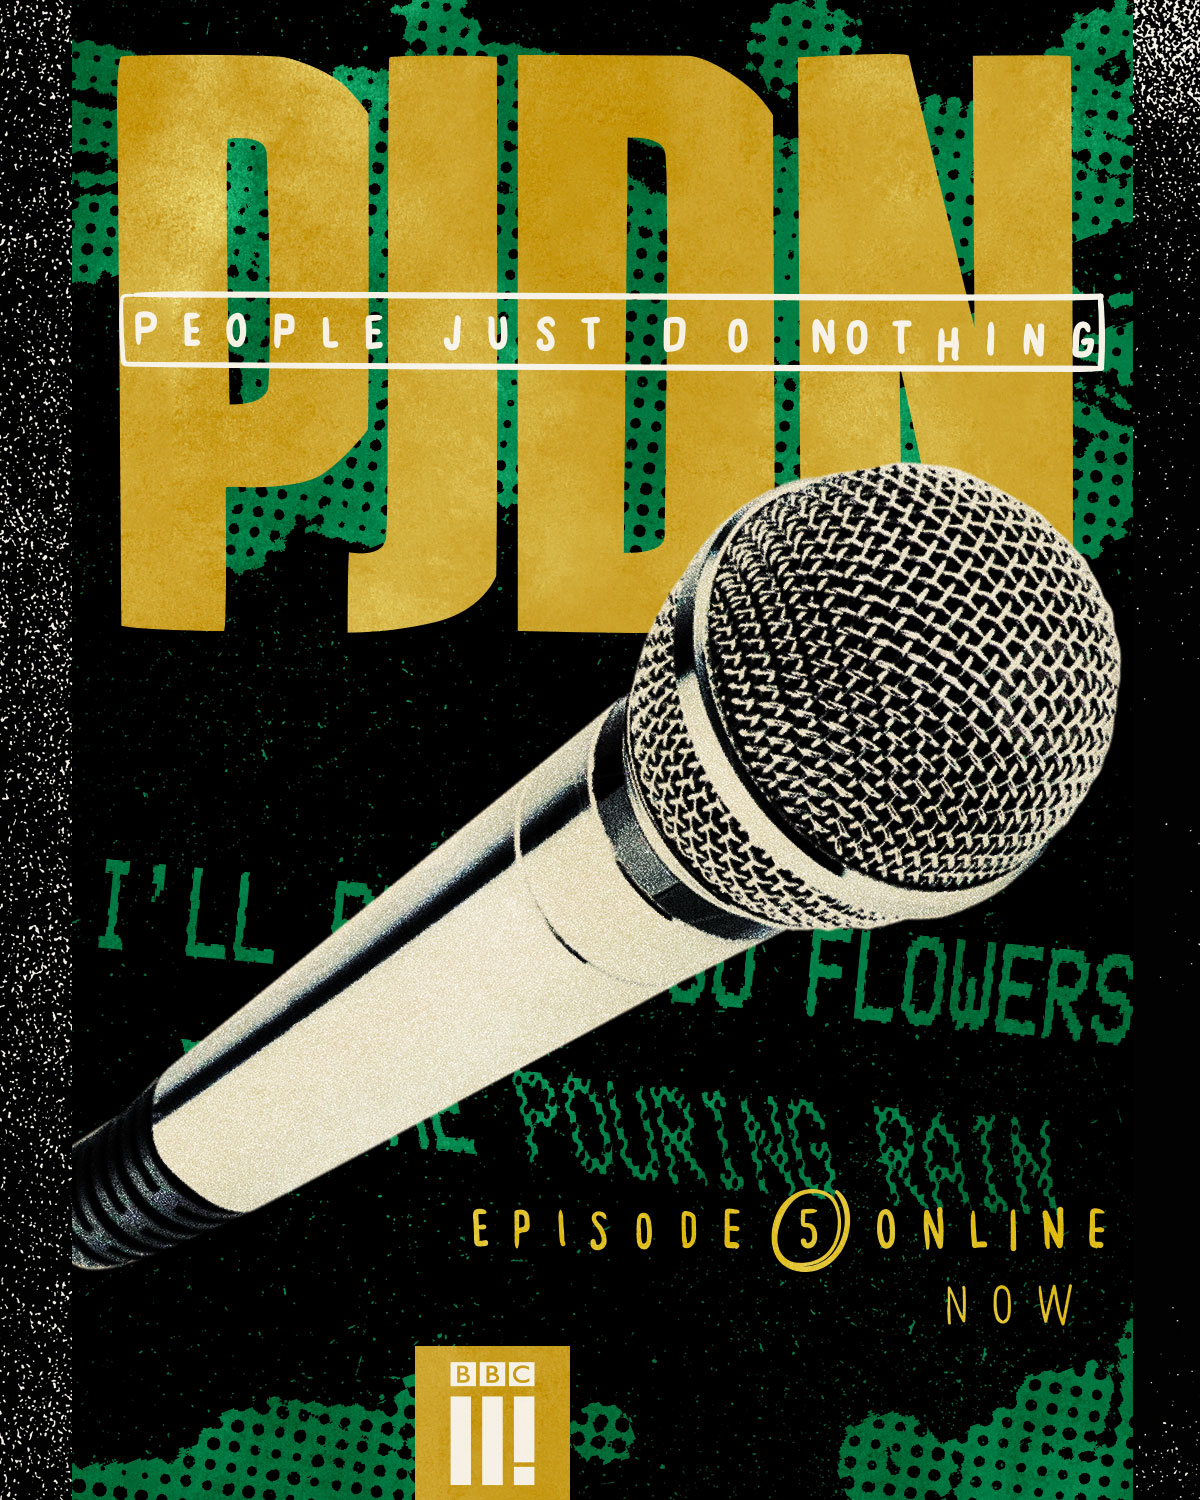 PJDN-Episode-announce-Insta-EP5-now.jpg